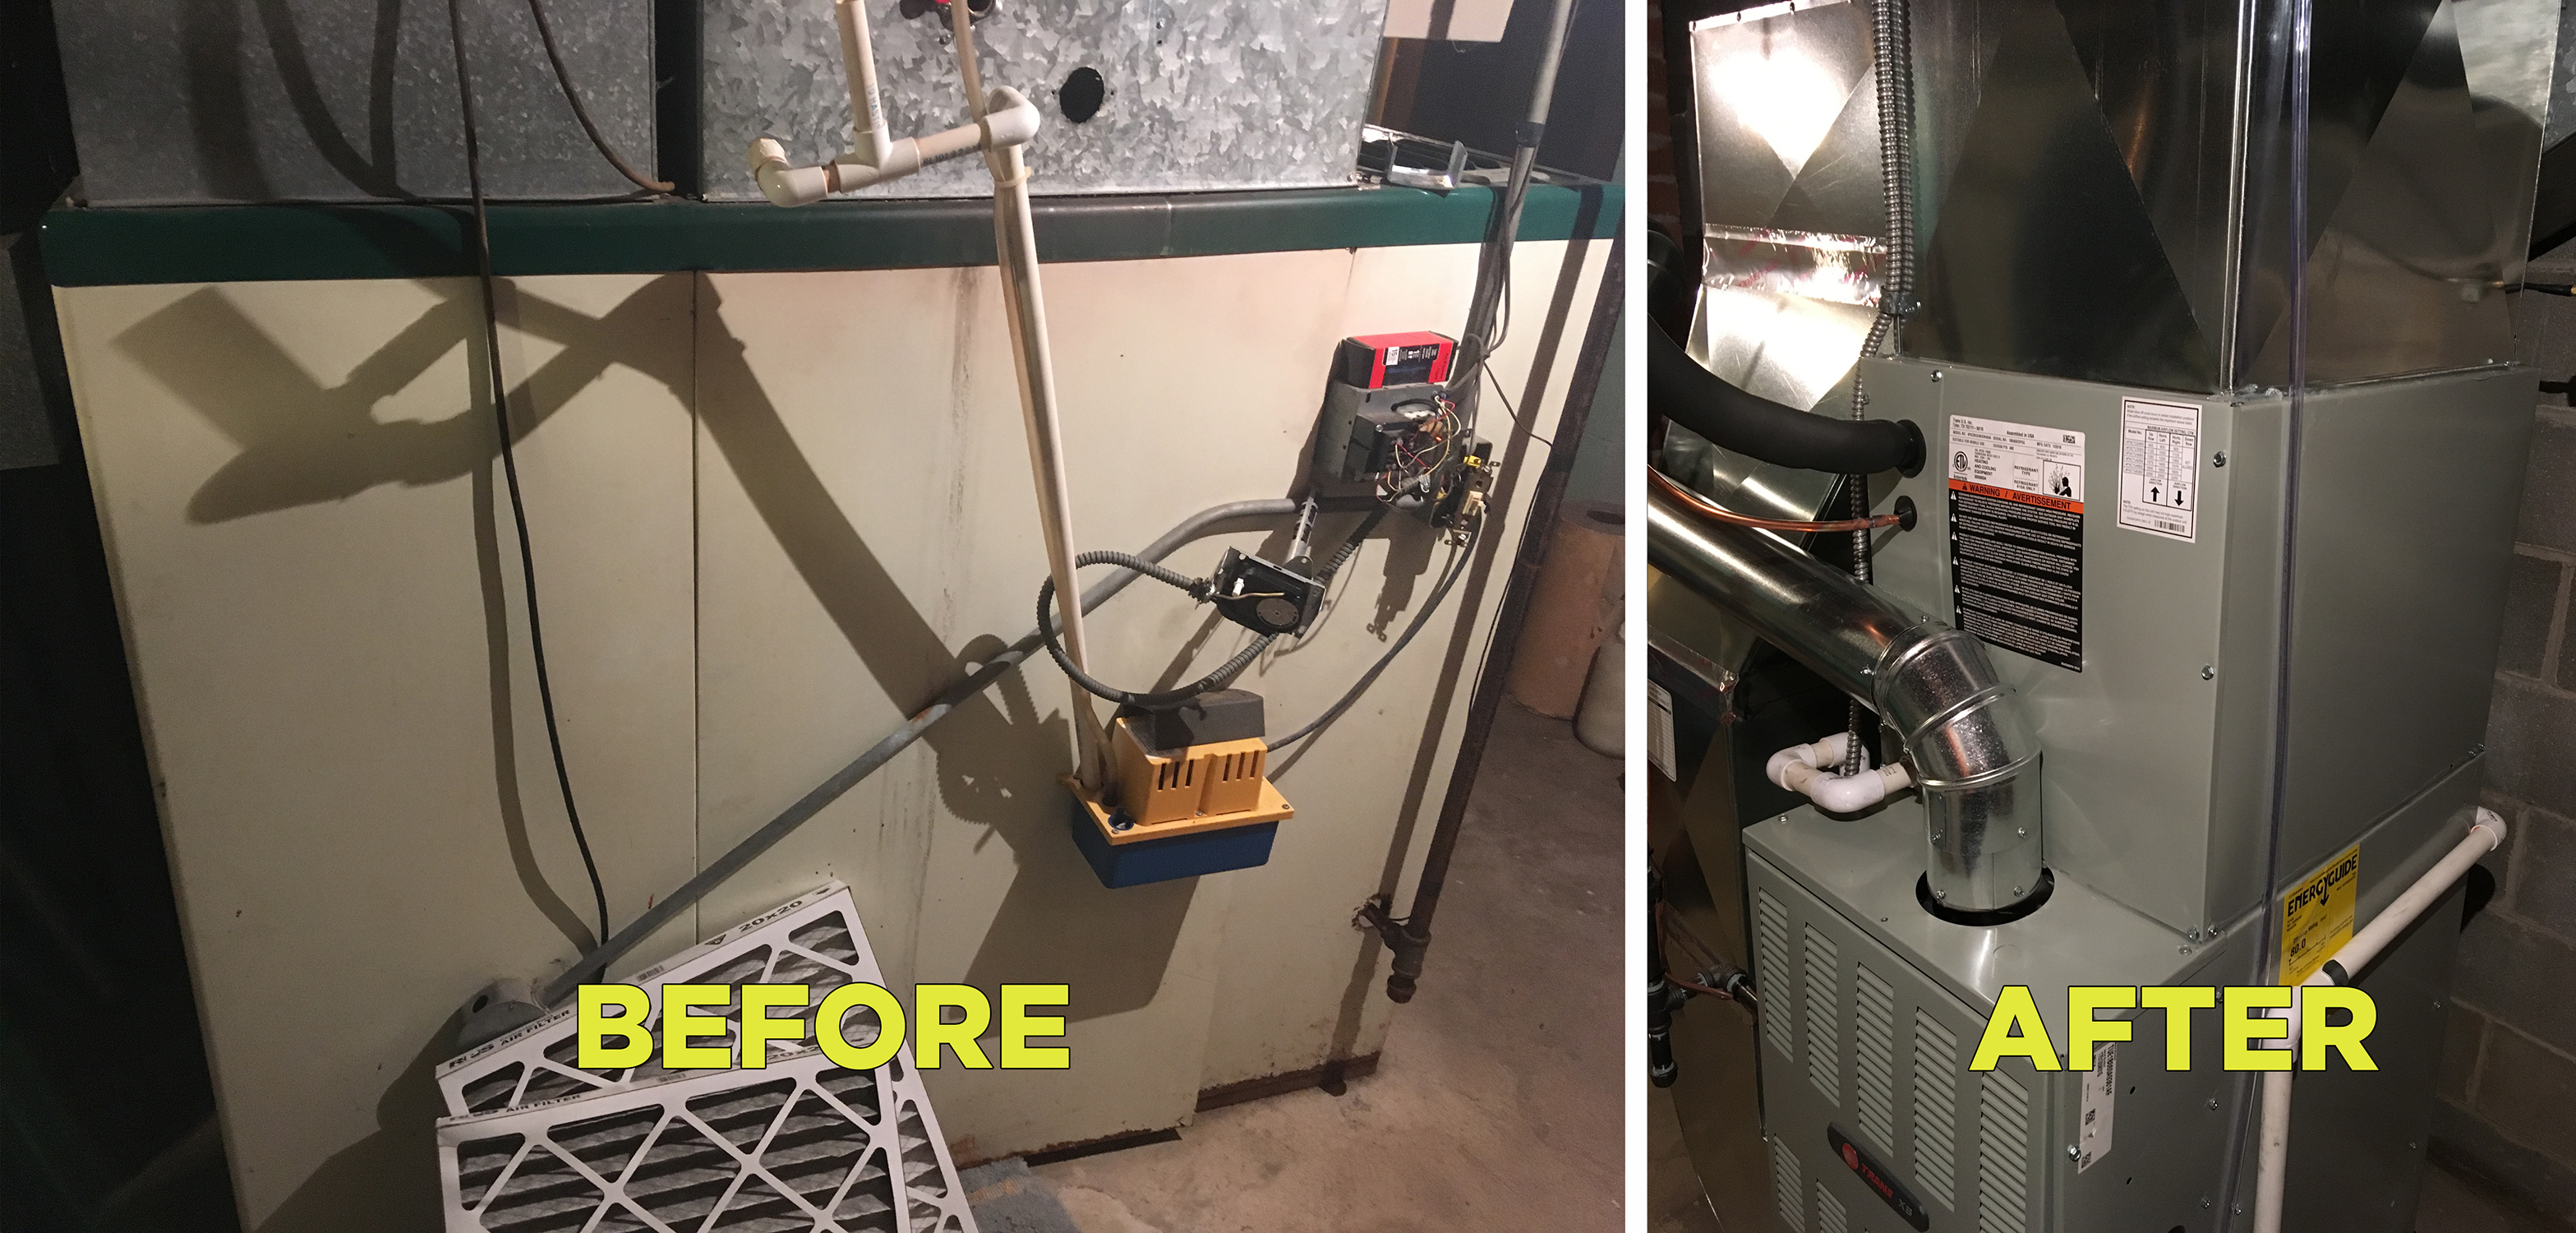 Before-After (5)